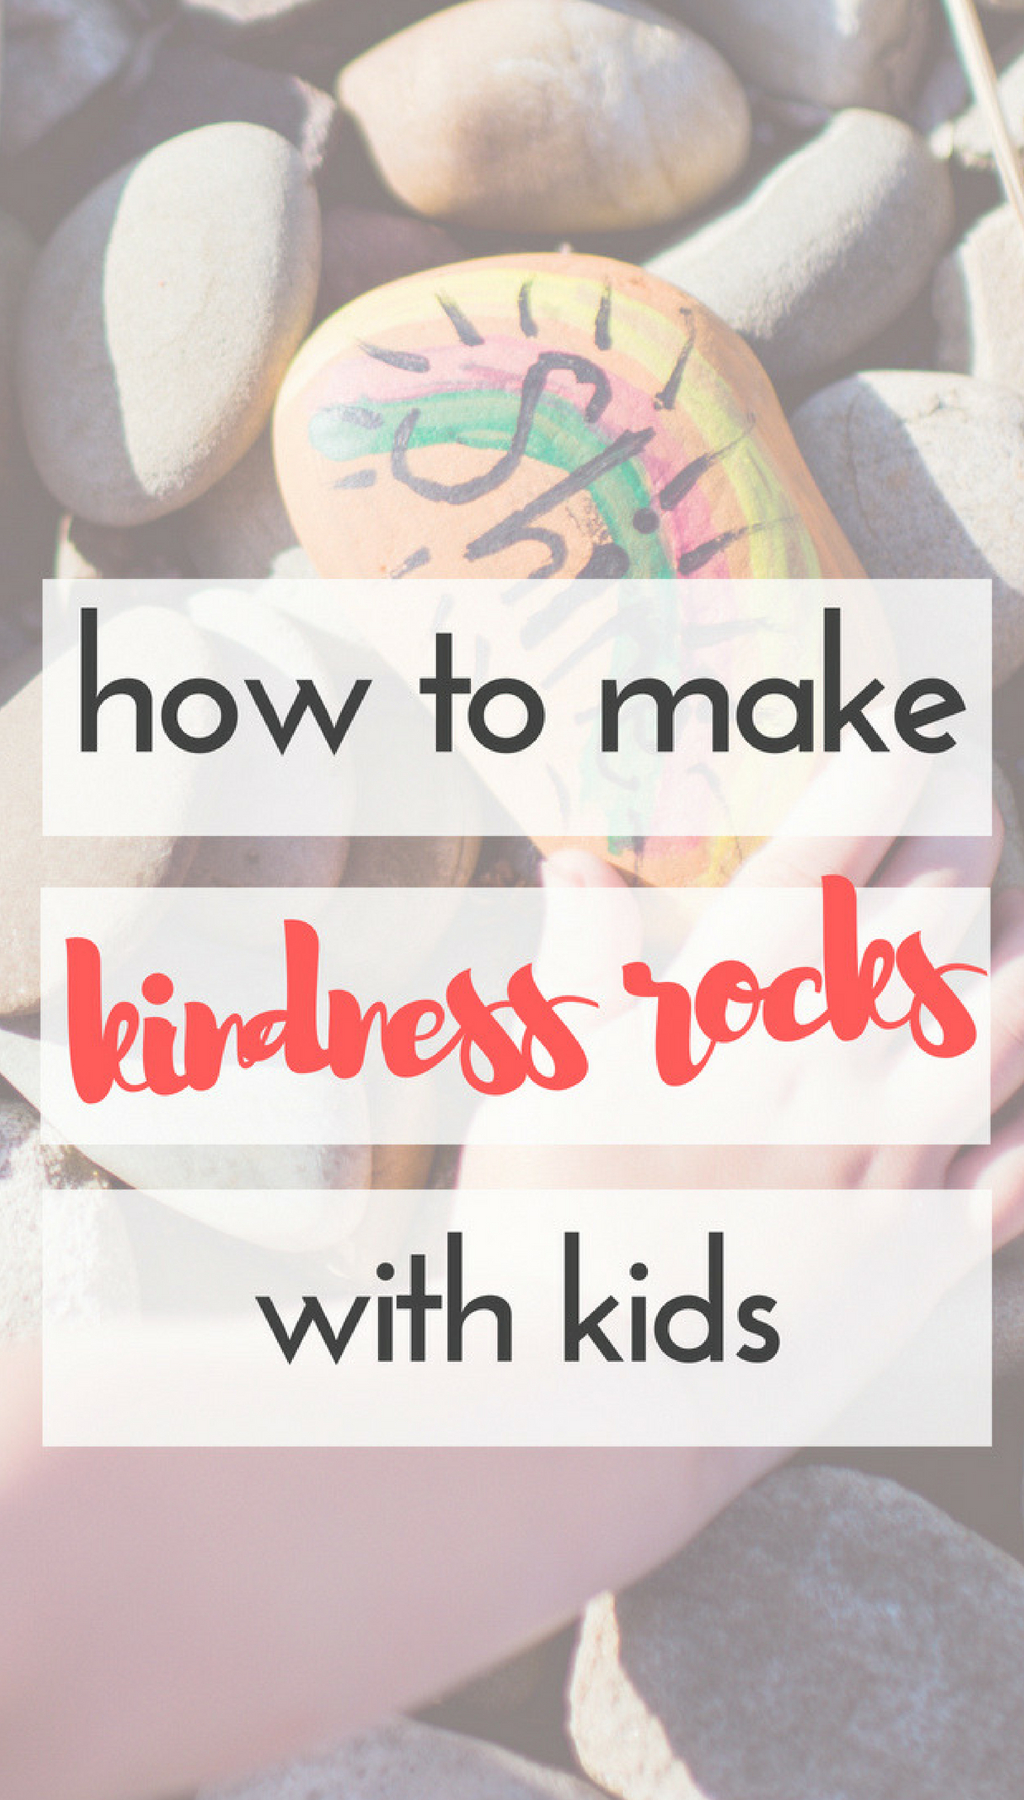 How to Make Kindness Rocks with Kids